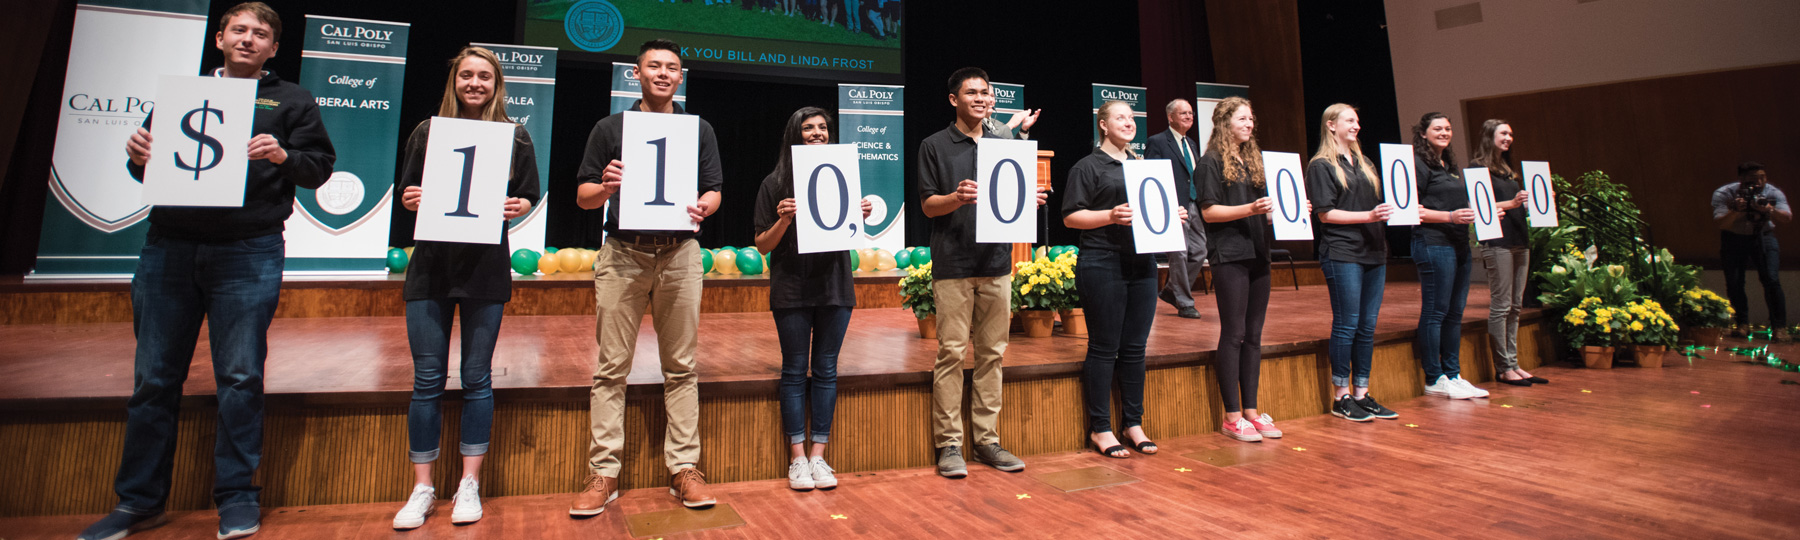 Cal Poly students holding signs that read $110,000,000